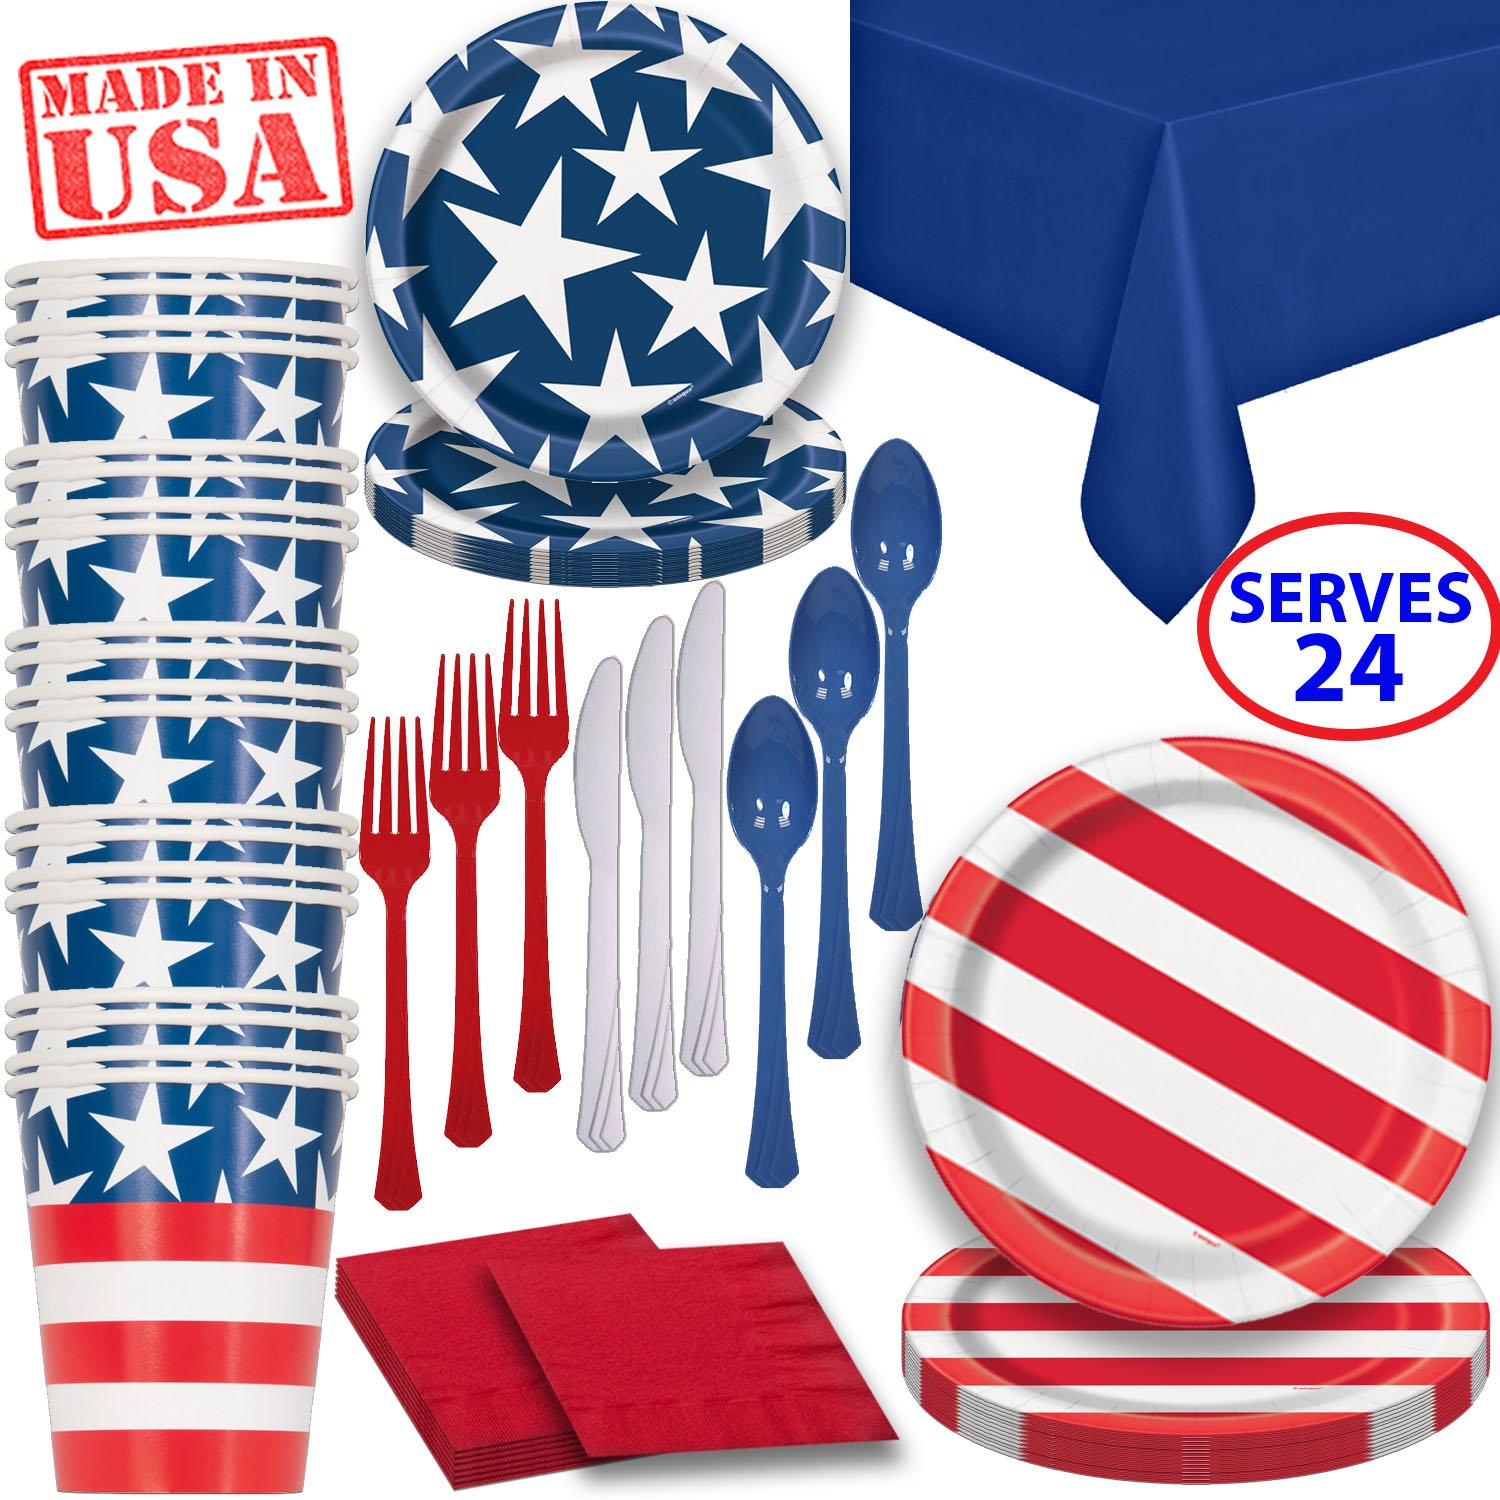 Disposable Paper Dinnerware for 24 - Patriotic - 2 Size plates, Cups, Napkins , Cutlery (Spoons, Forks, Knives), and tablecovers - Full Party Supply Pack